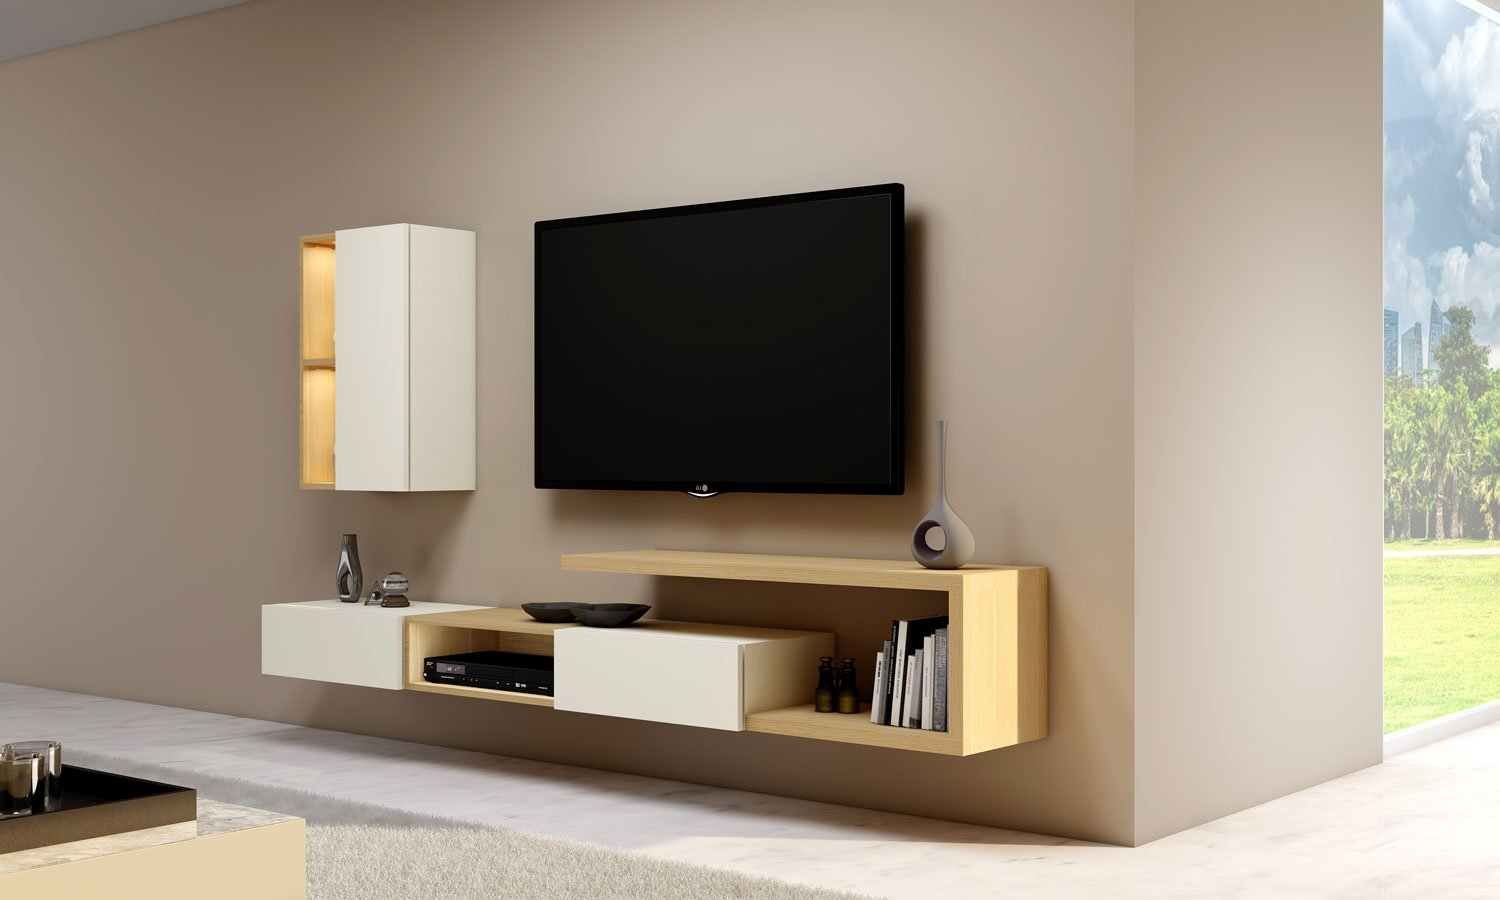 Matt TV unit with Storage in Drawers,Open Shelves and Wall units in combination of Natural Lancaster Oak and White